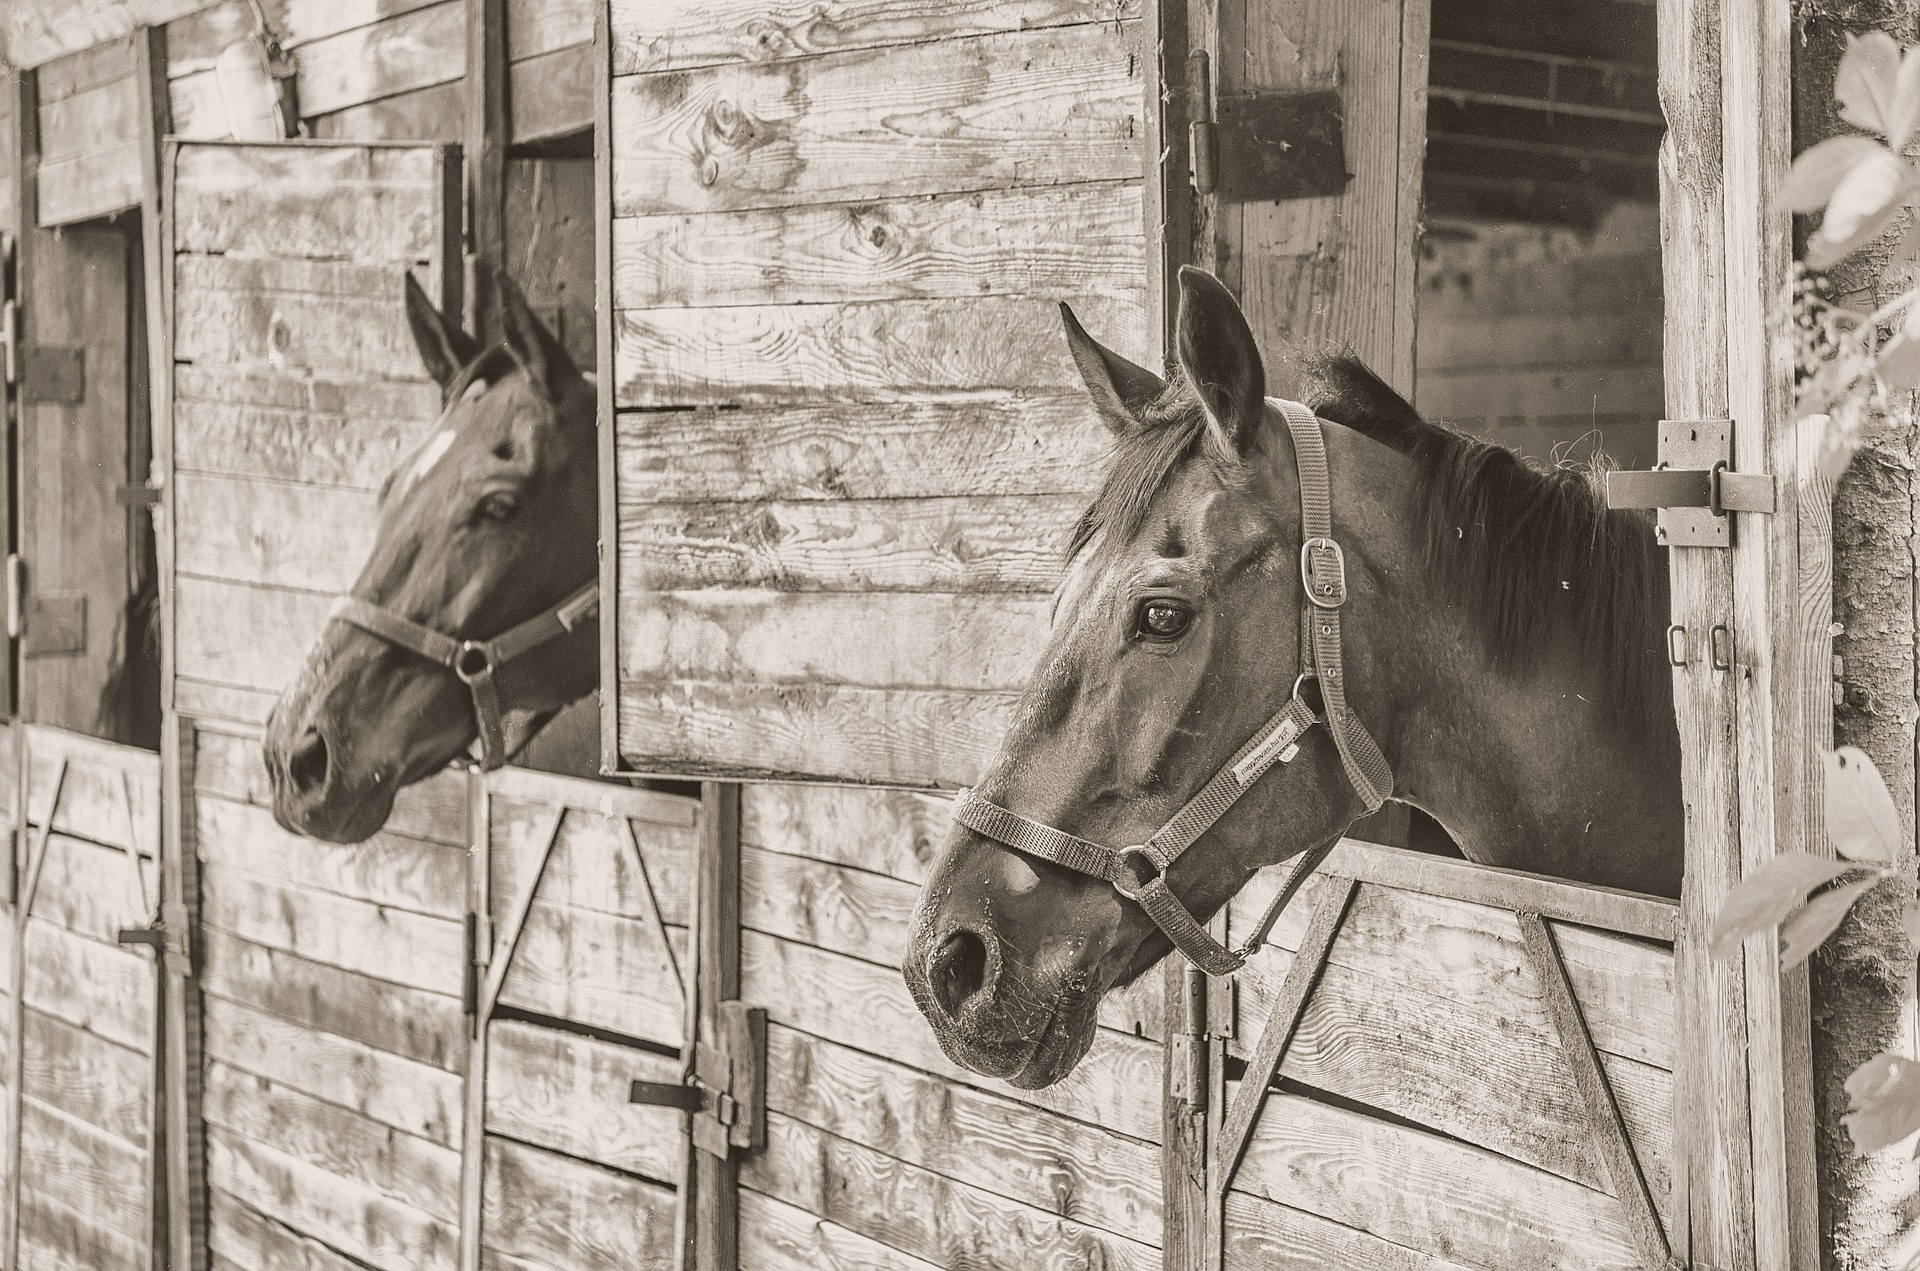 Understanding the Great Horse Manure Crisis of 1894